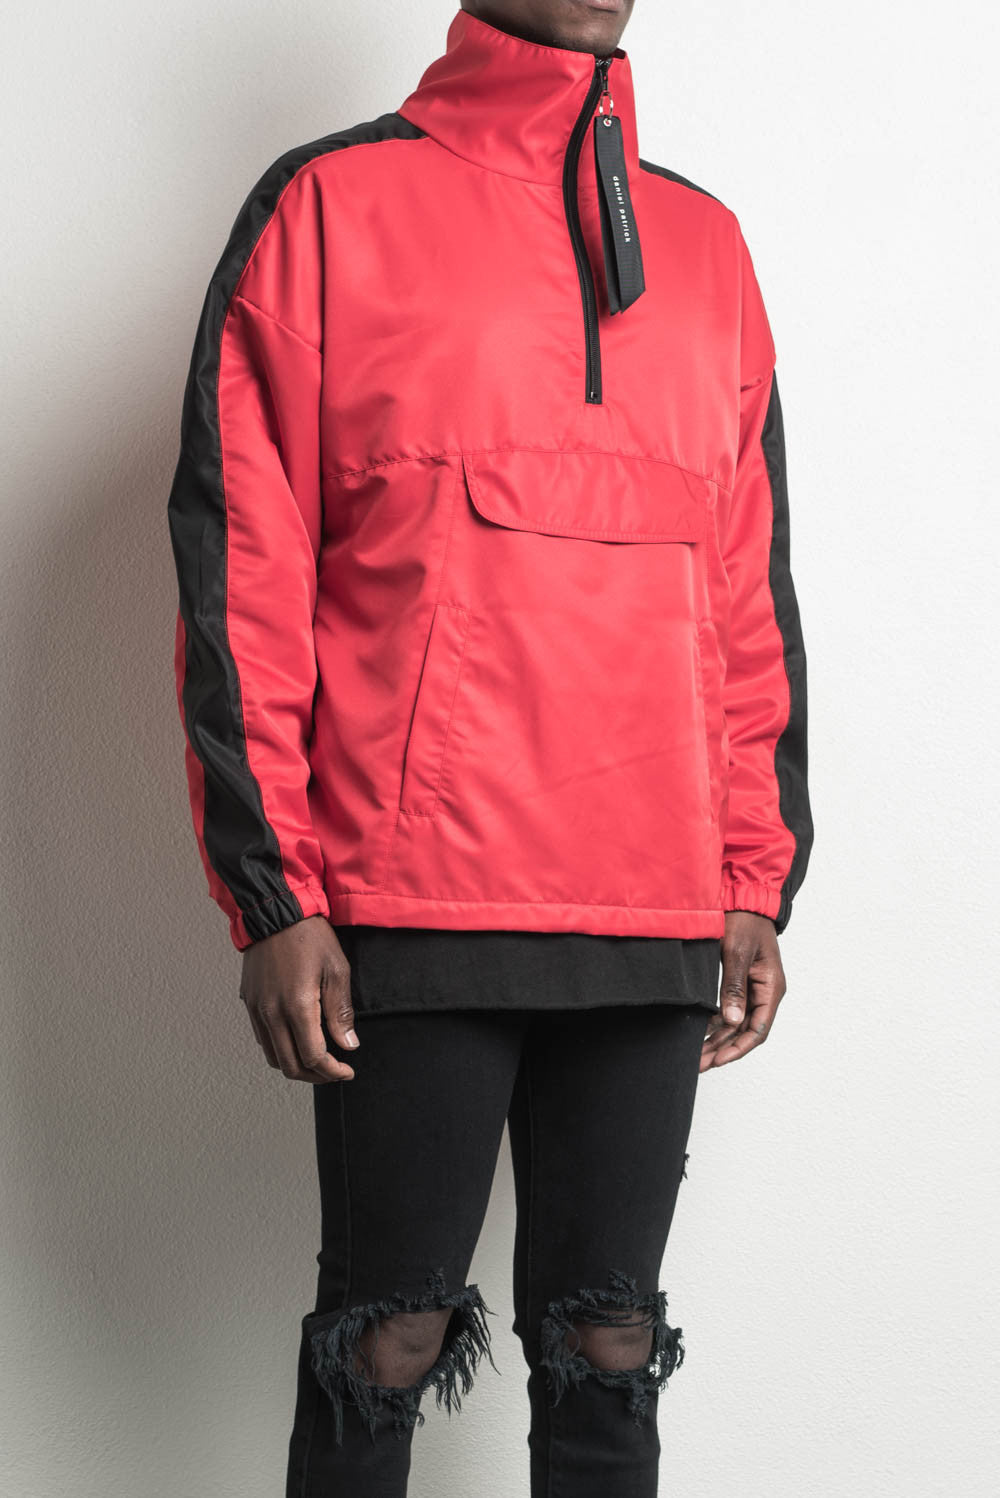 anorak track jacket in red/black by daniel patrick